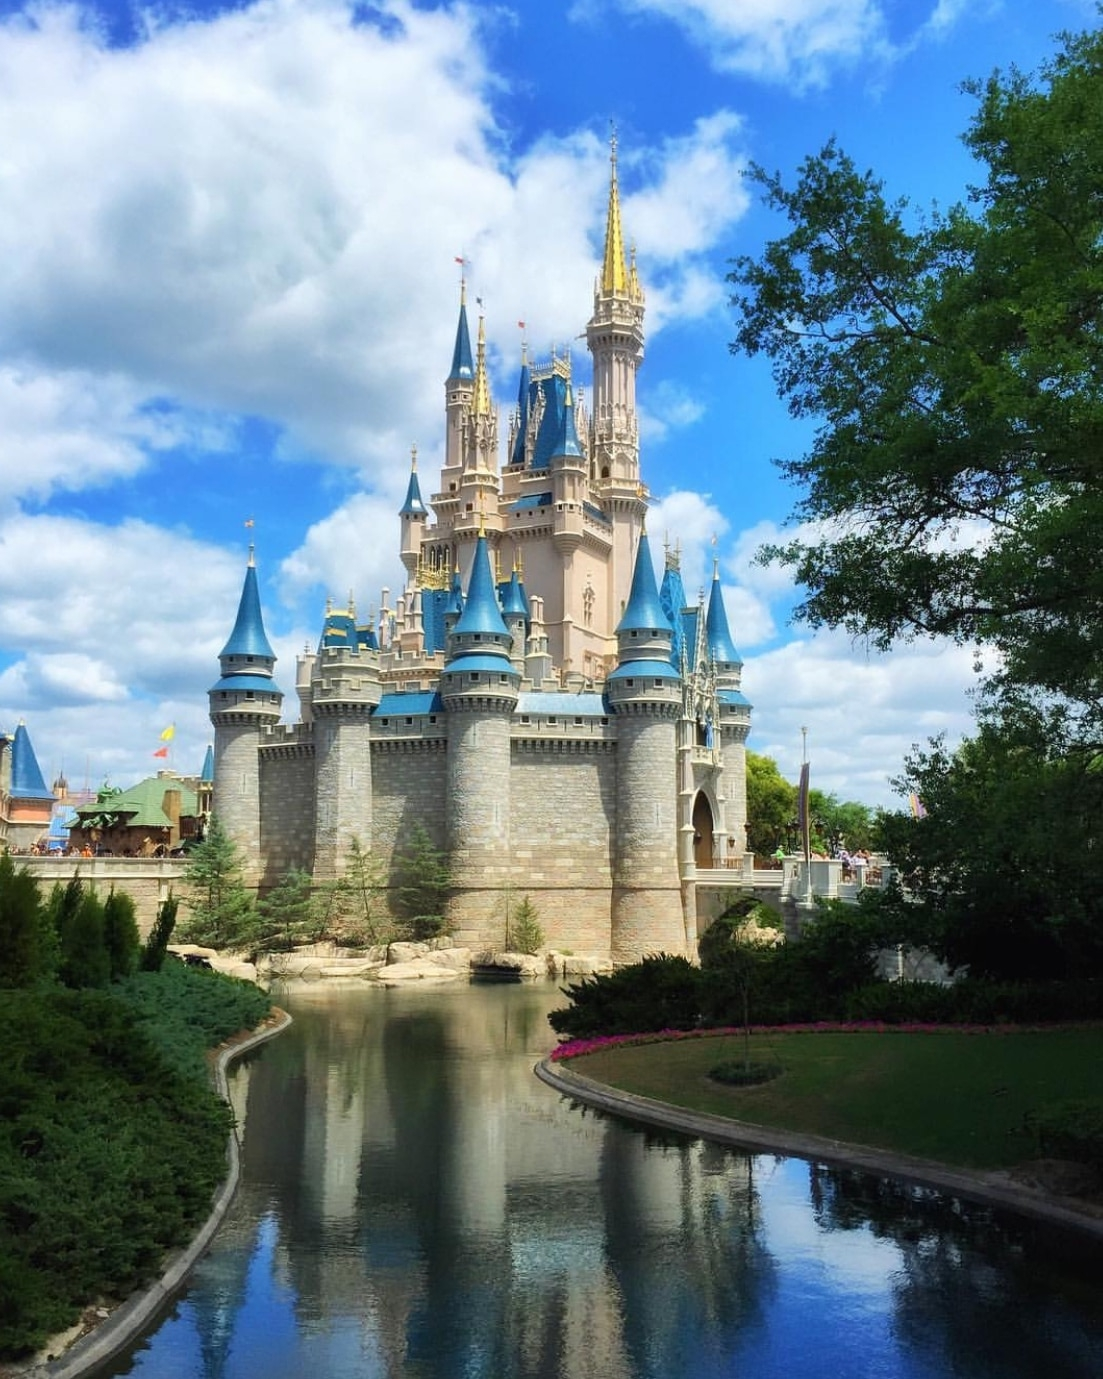 Cinderella Castle in the Magic Kingdom at Walt Disney World